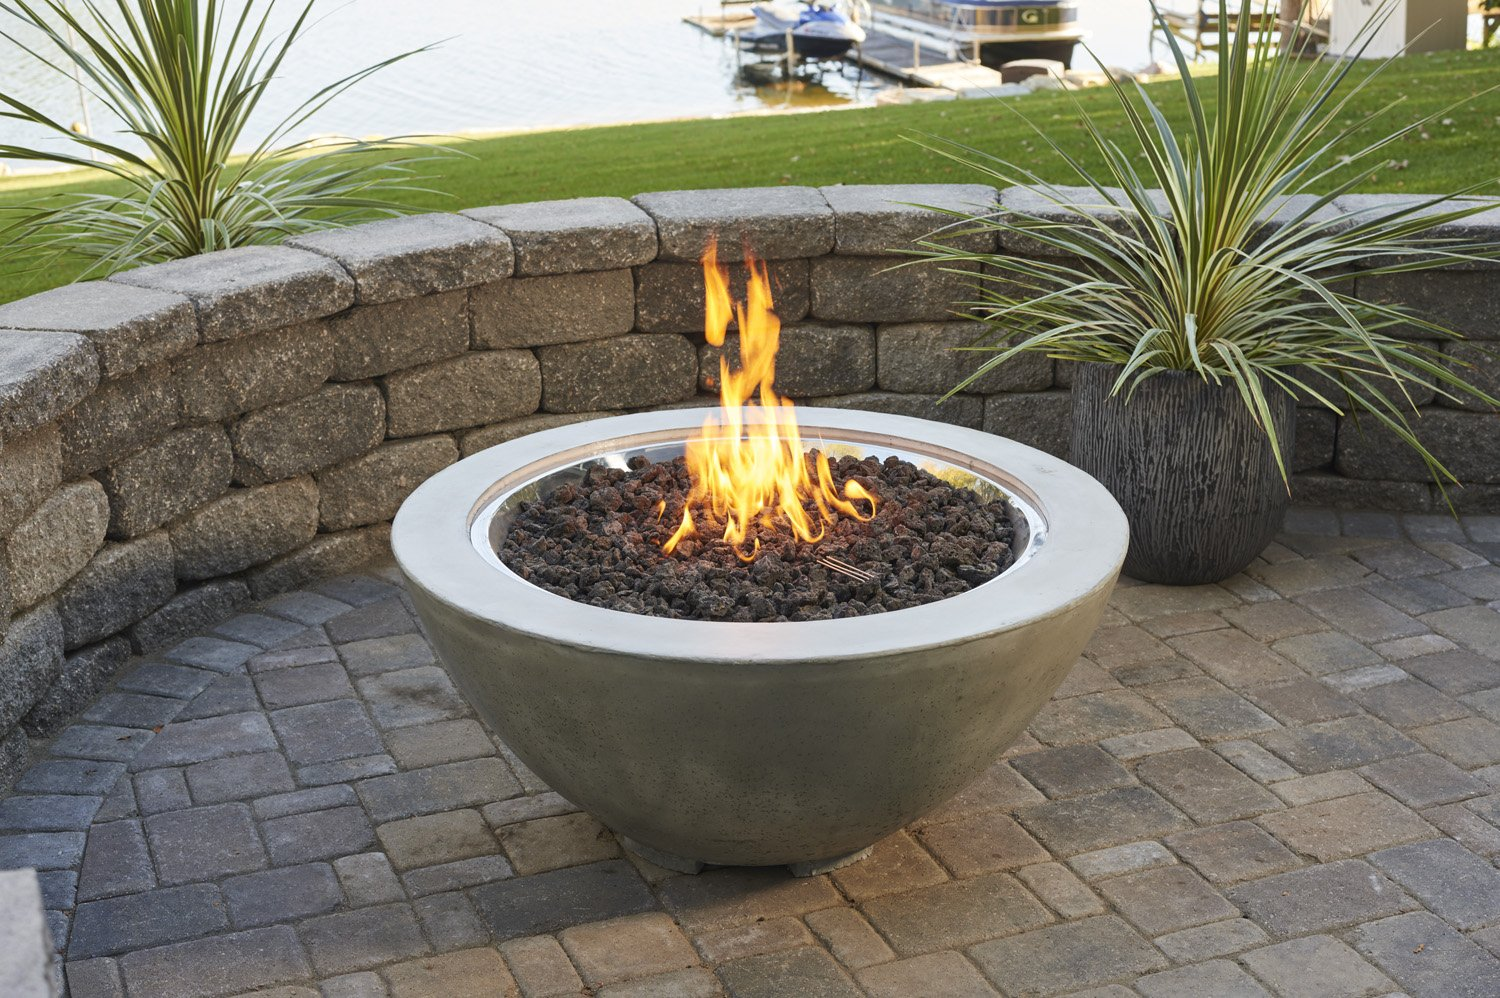 Cove 30, promotion, sale, fire pit, firepit, fire table,  firetable, Outdoor Greatroom Company